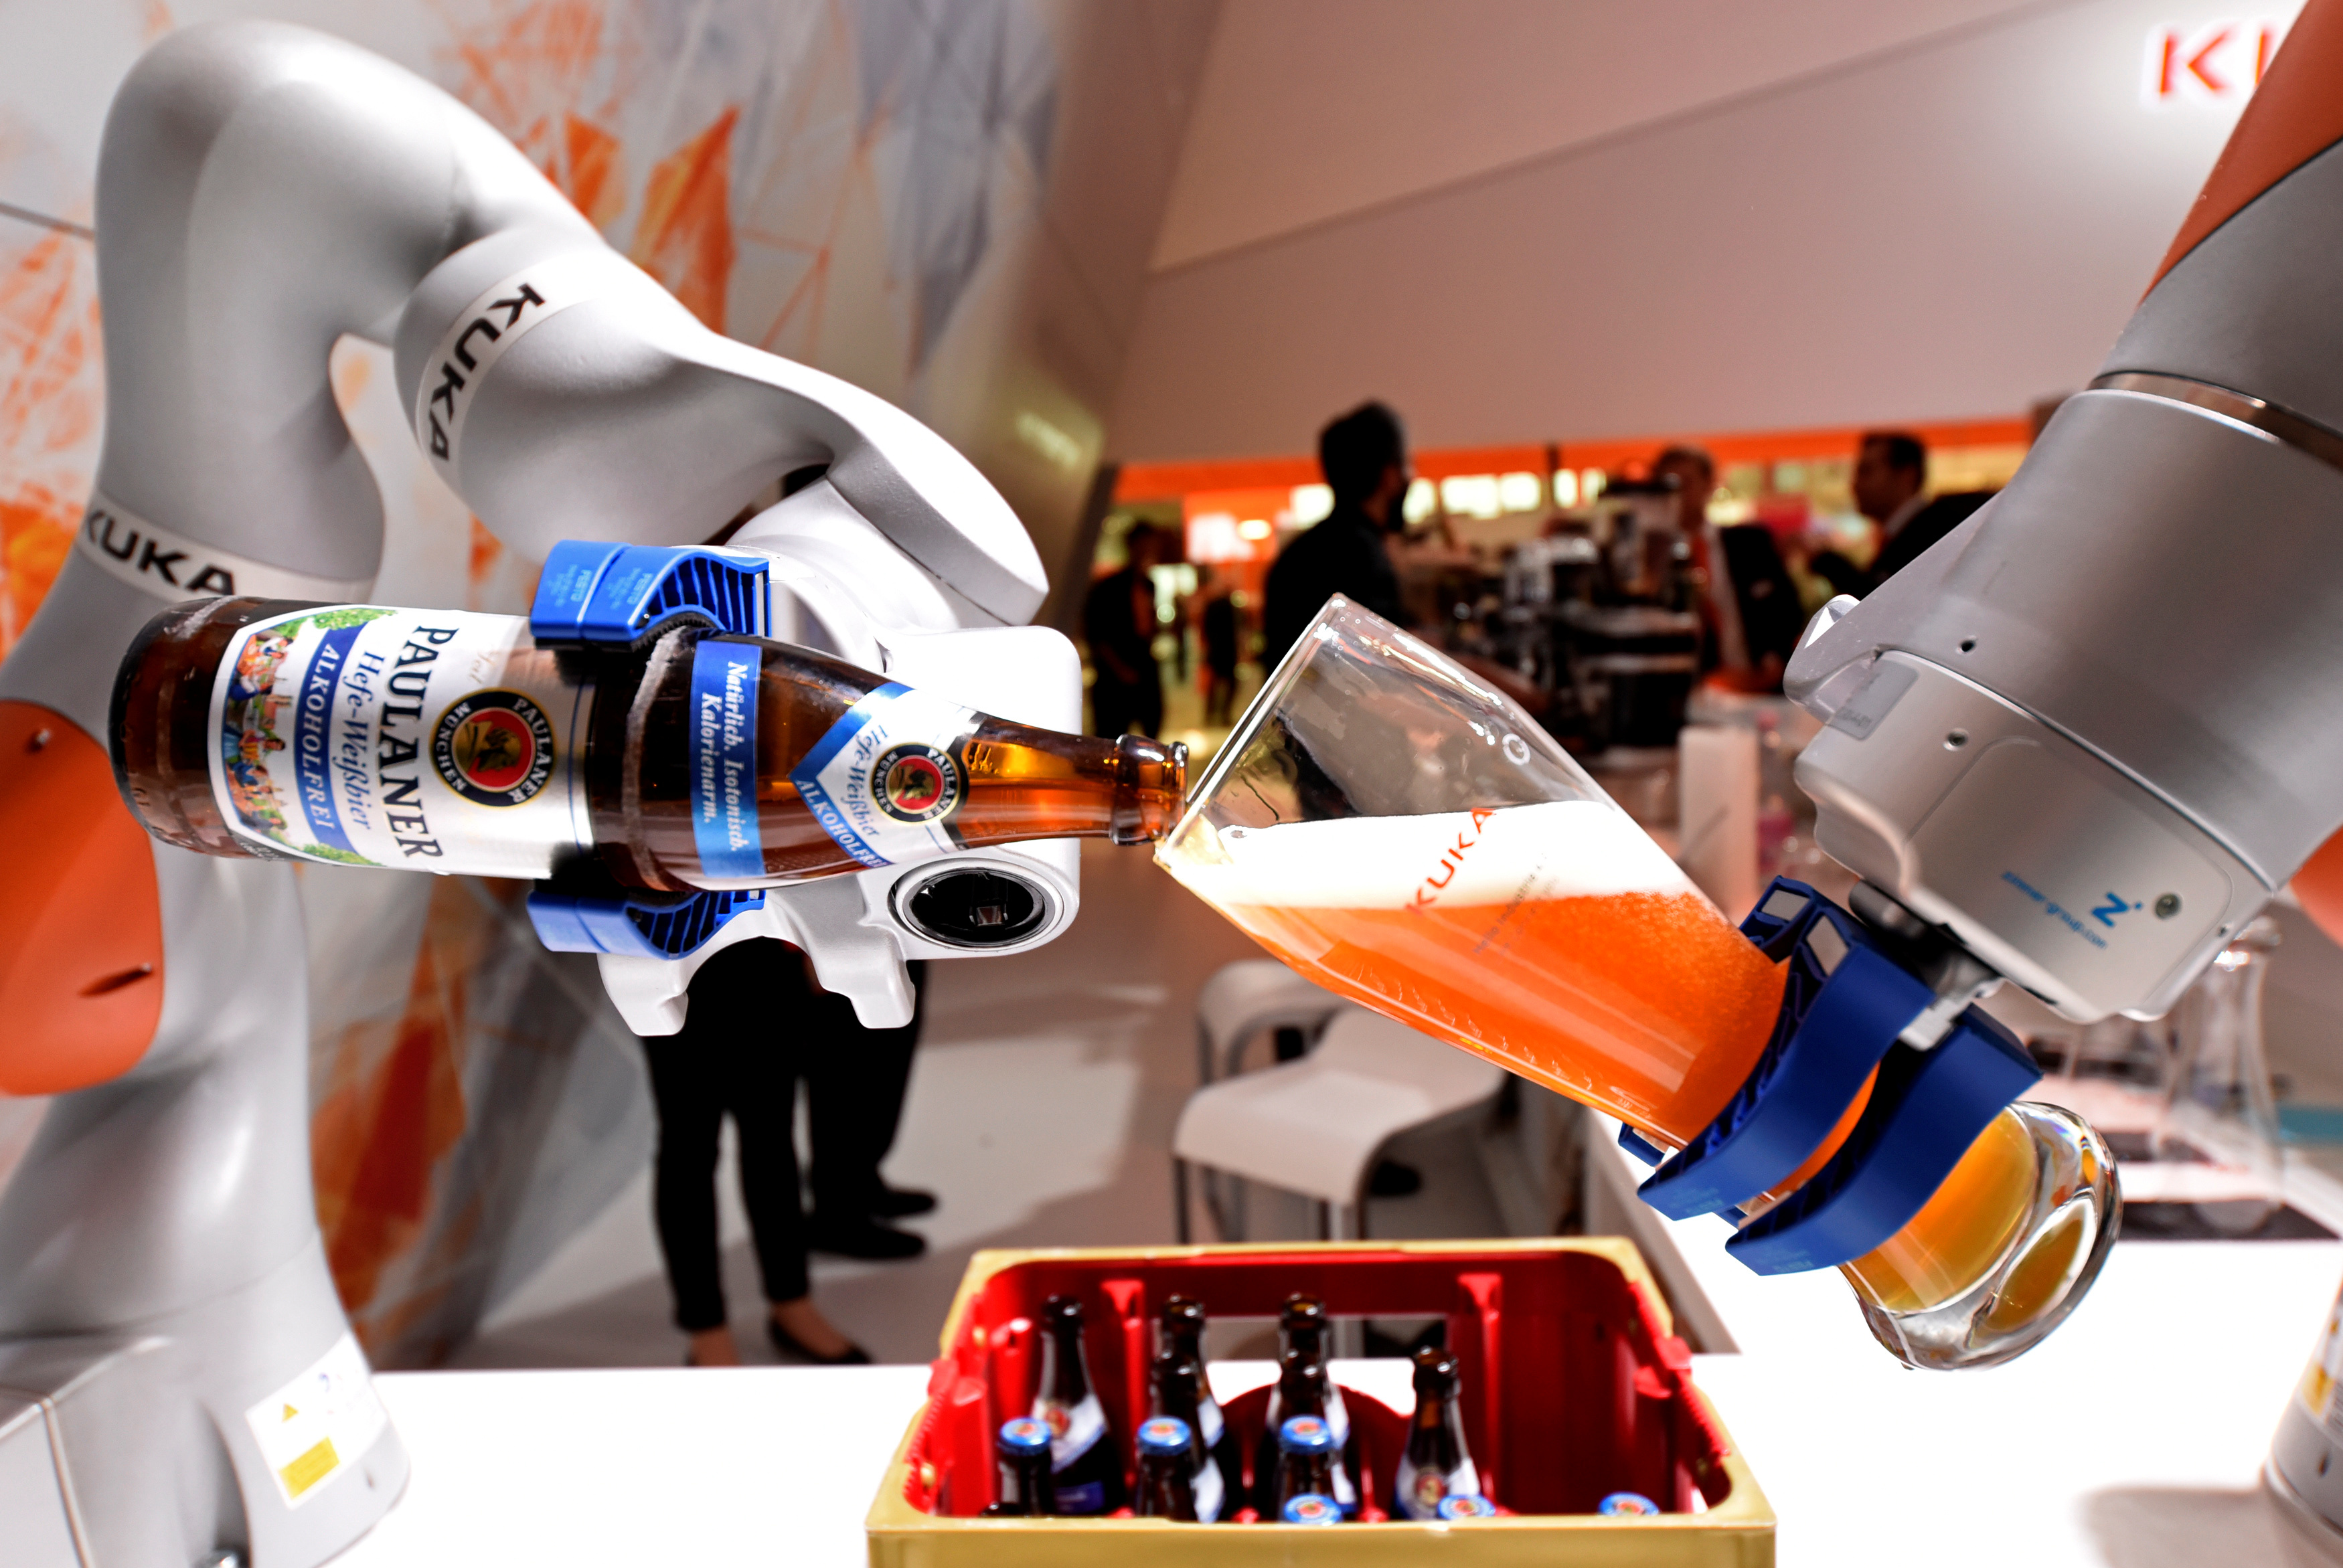 """A robotic arm fills a glass with Bavarian Weiss beer at the booth of German company Kuka at the world's biggest industrial fair, """"Hannover Fair"""", in Hanover, Germany April 24, 2017. REUTERS/Fabian Bimmer - RC1C5CEE06B0"""